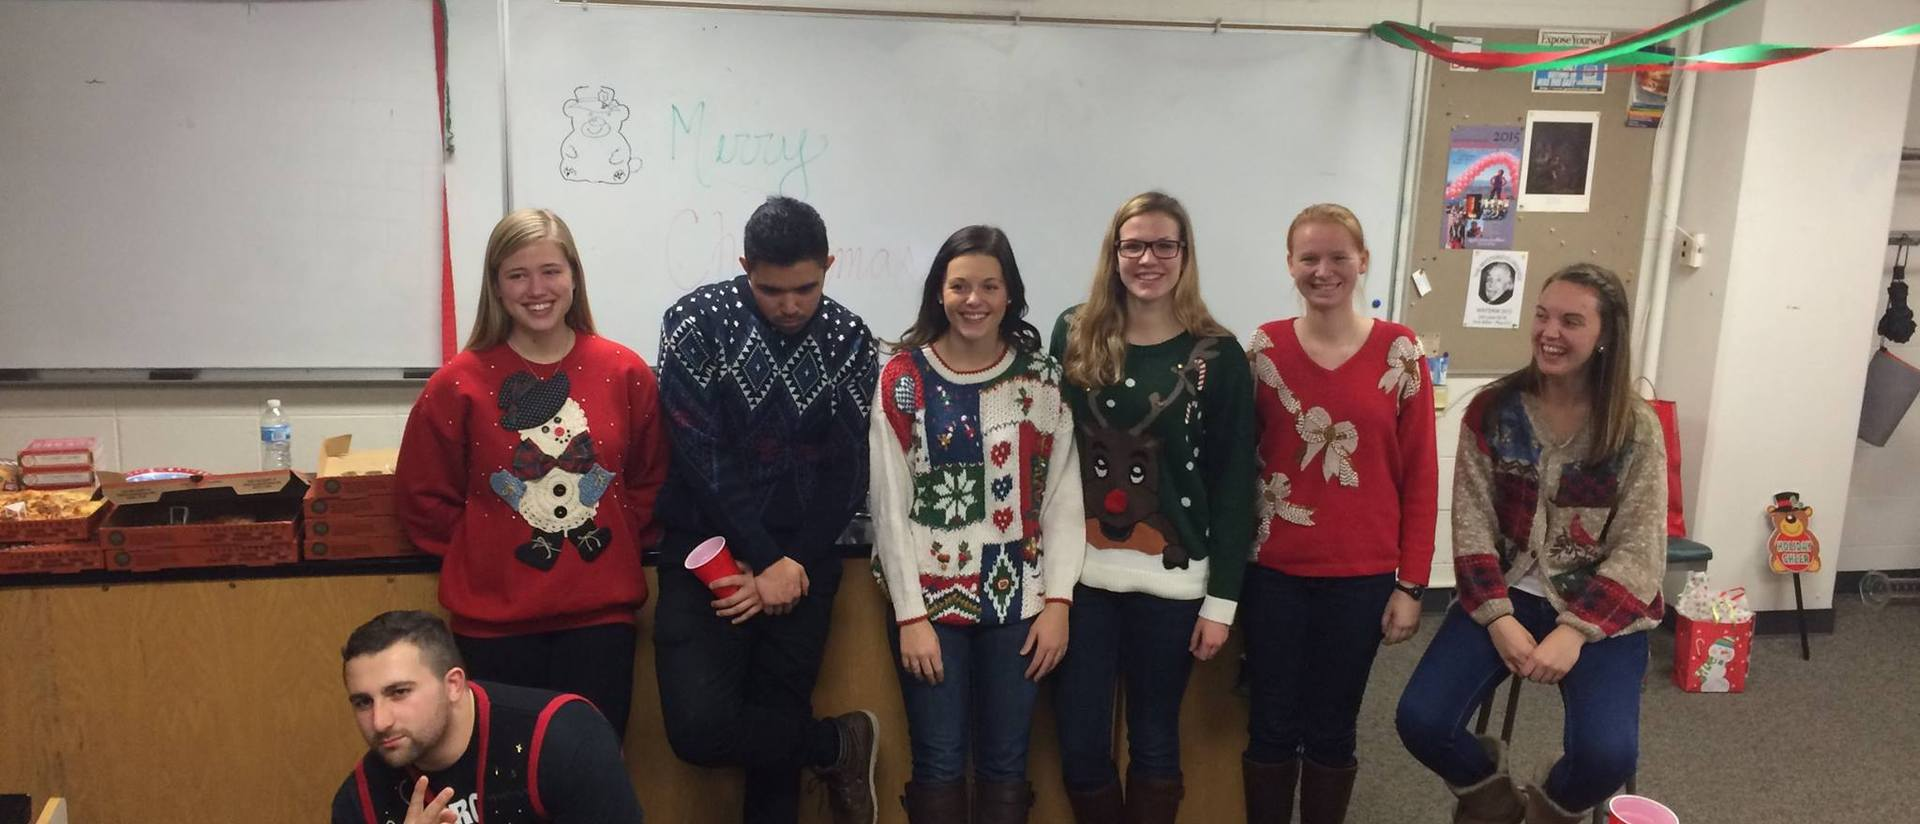 Chemistry and Christmas sweaters